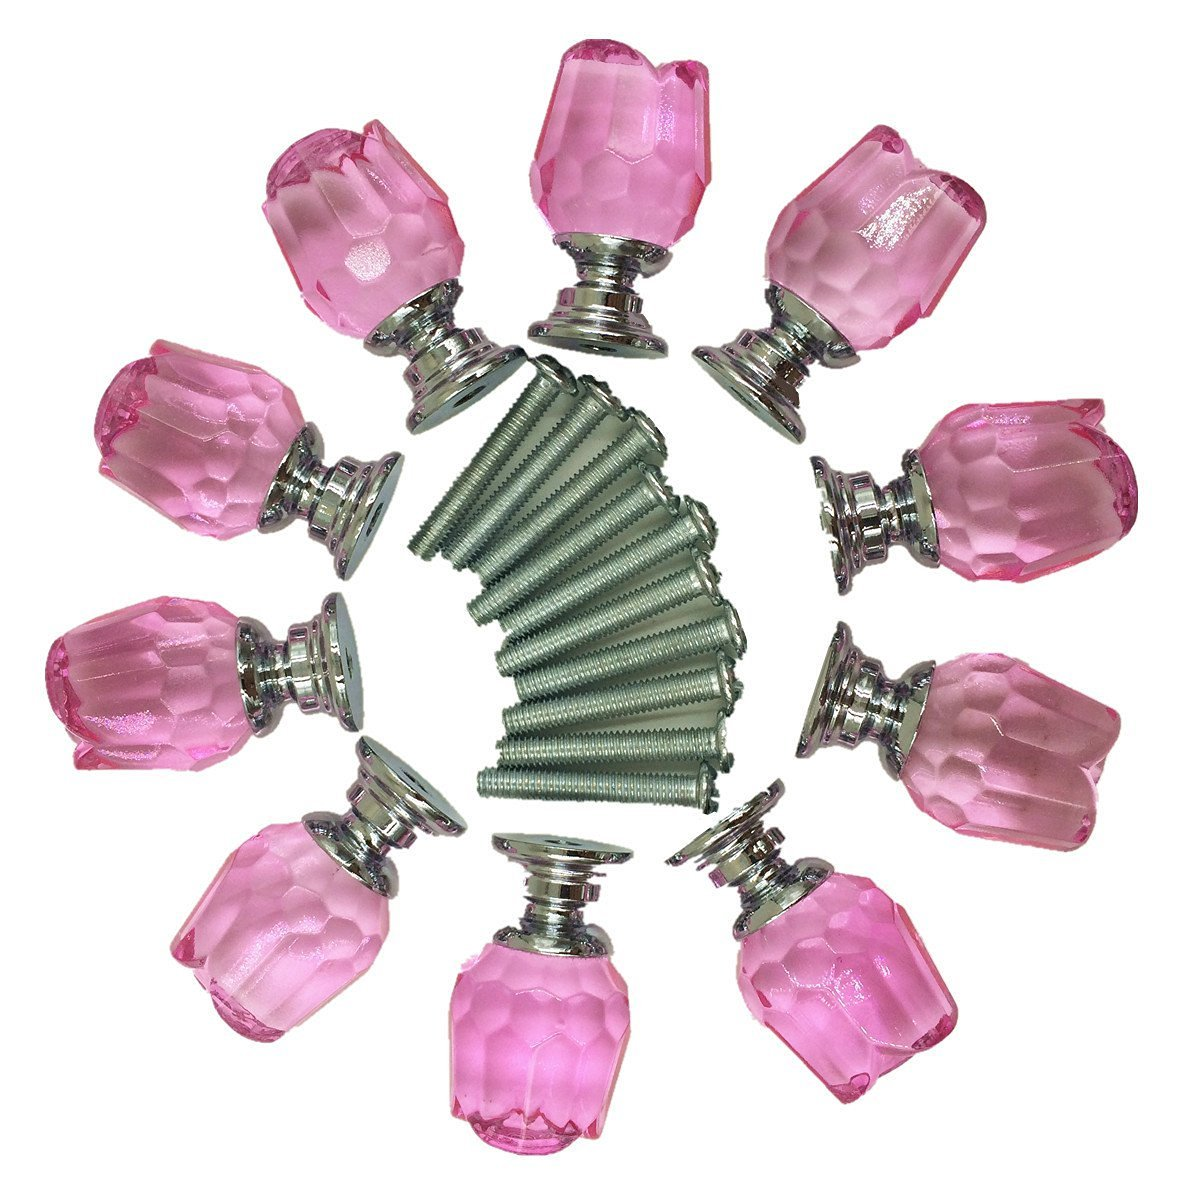 Yahead 10pcs Crystal Glass Door Knobs Rose Shaped Cabinet Cupboard Pulls Handles Drawer Knobs Wardrobe Home Kitchen Hardware 20mm Pink